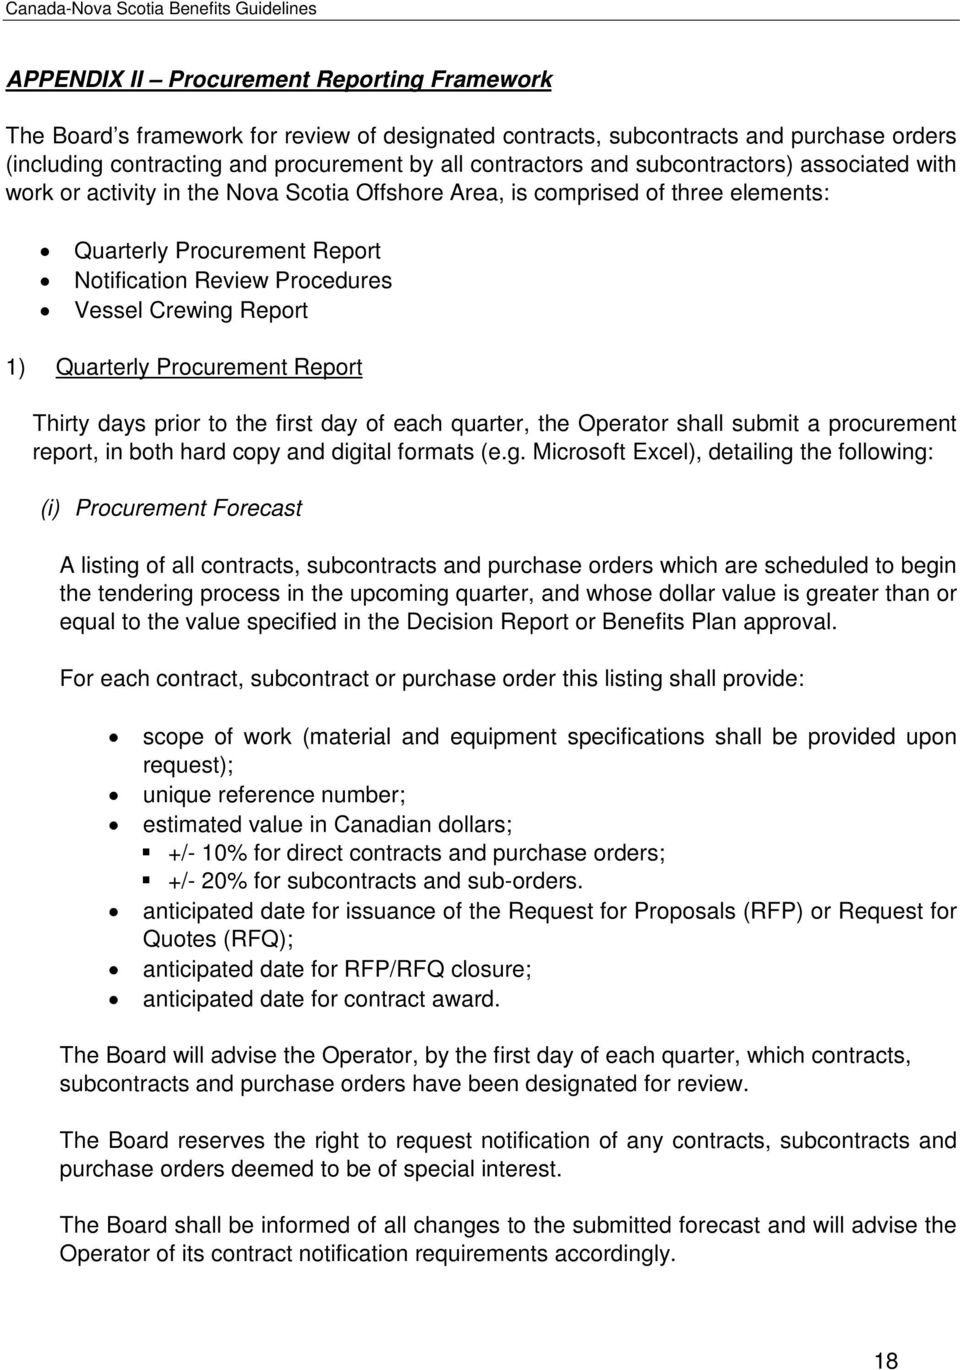 Quarterly Procurement Report Thirty days prior to the first day of each quarter, the Operator shall submit a procurement report, in both hard copy and digi